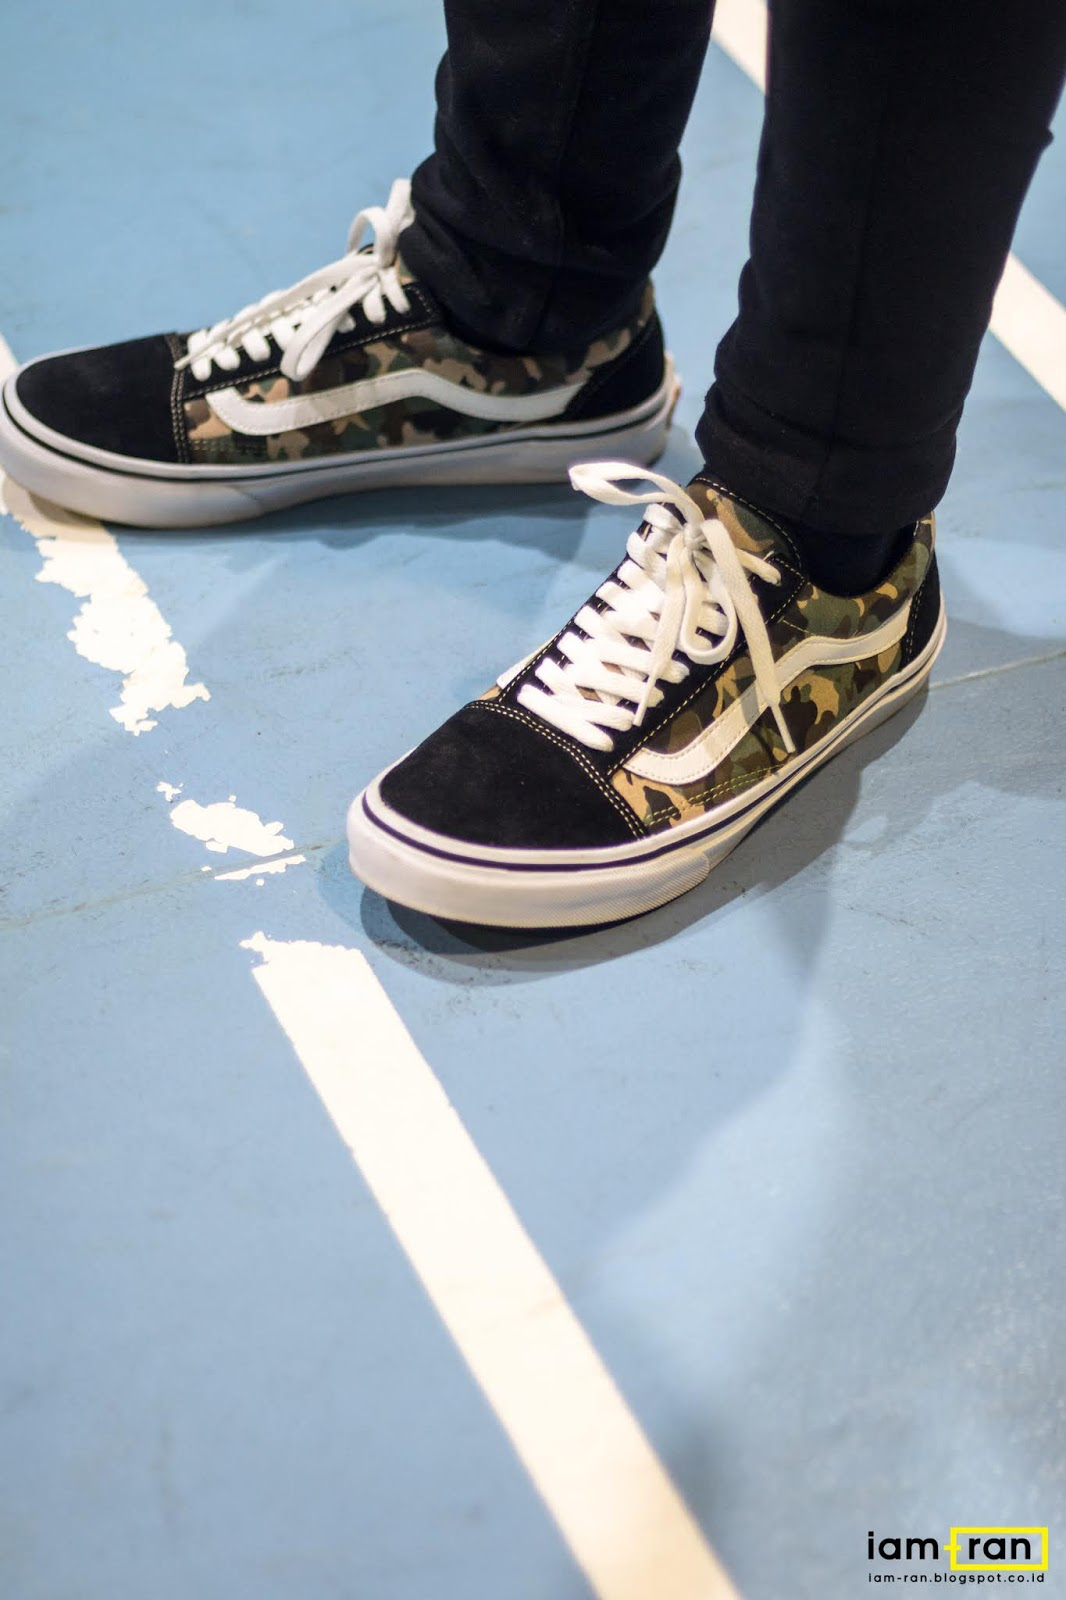 e5ea547d4e Ade On Feet Sneakers   Vans Old School Woodland Camo. Photo by    iam.ran06What